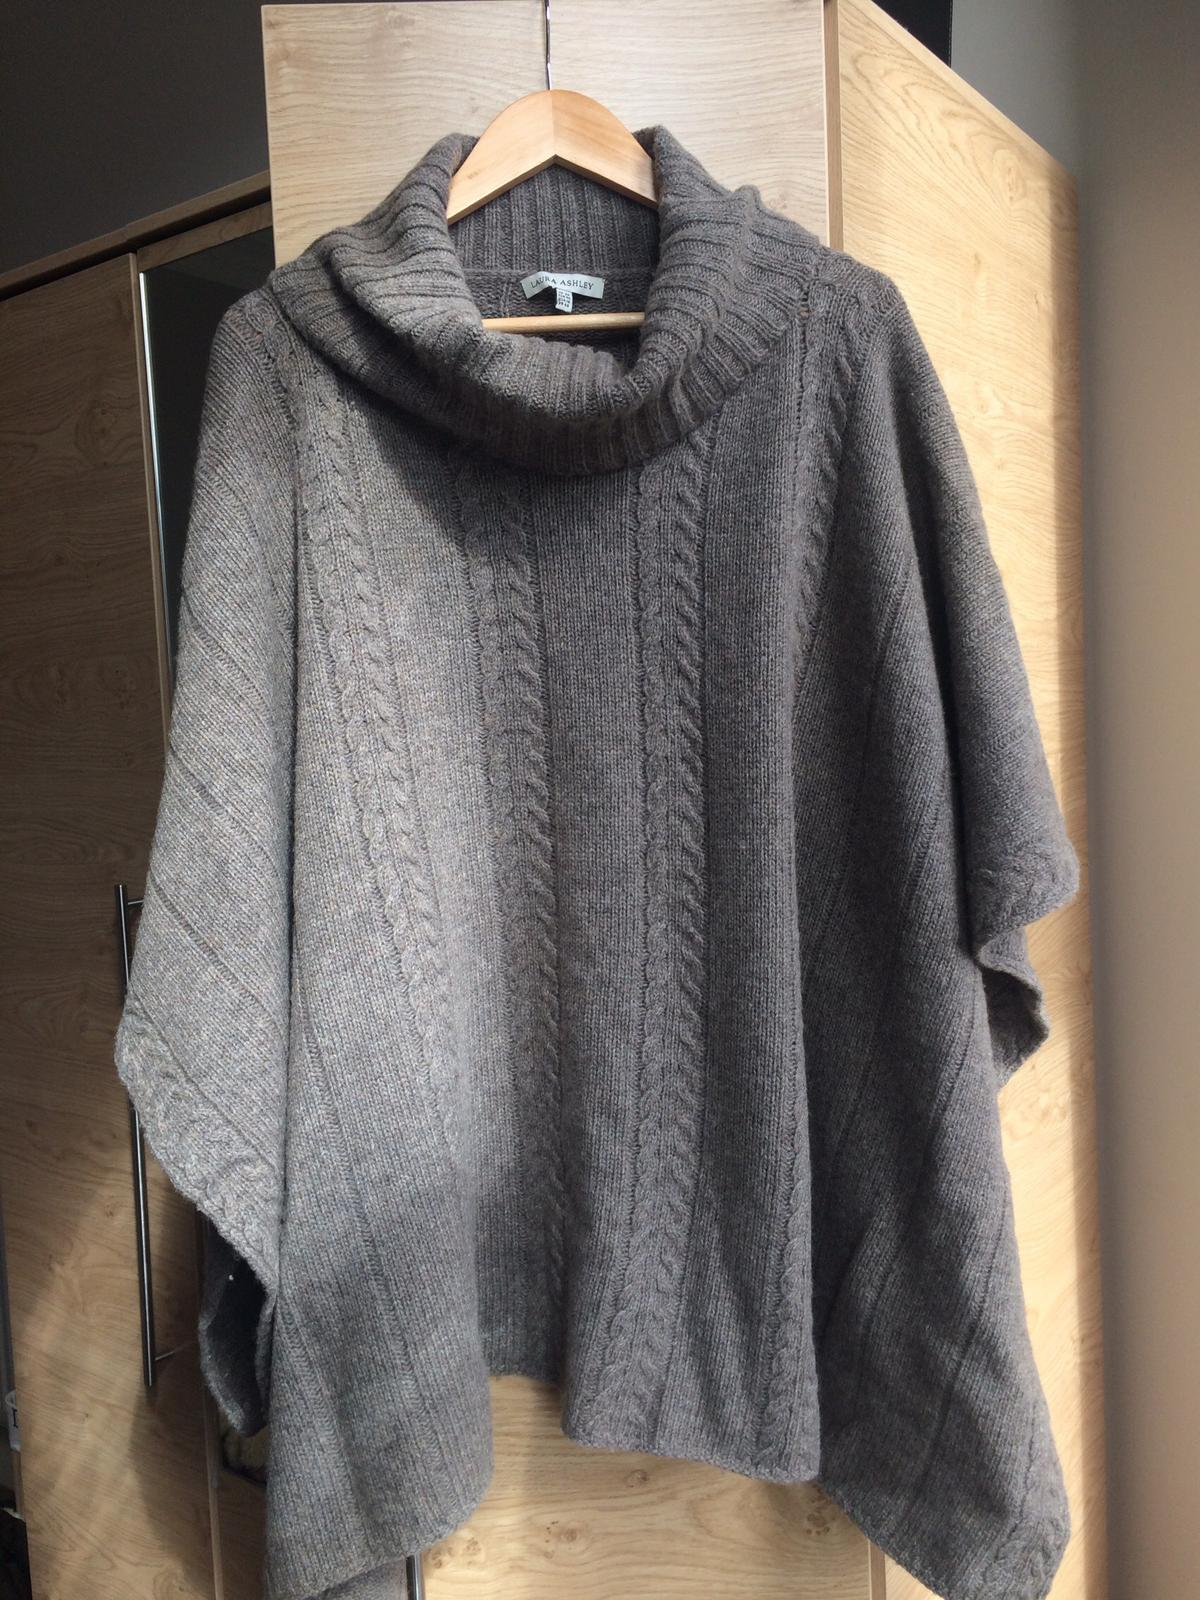 Ponchos Köln Laura Ashley Poncho In Eh9 Edinburgh Für 25 00 Kaufen Shpock